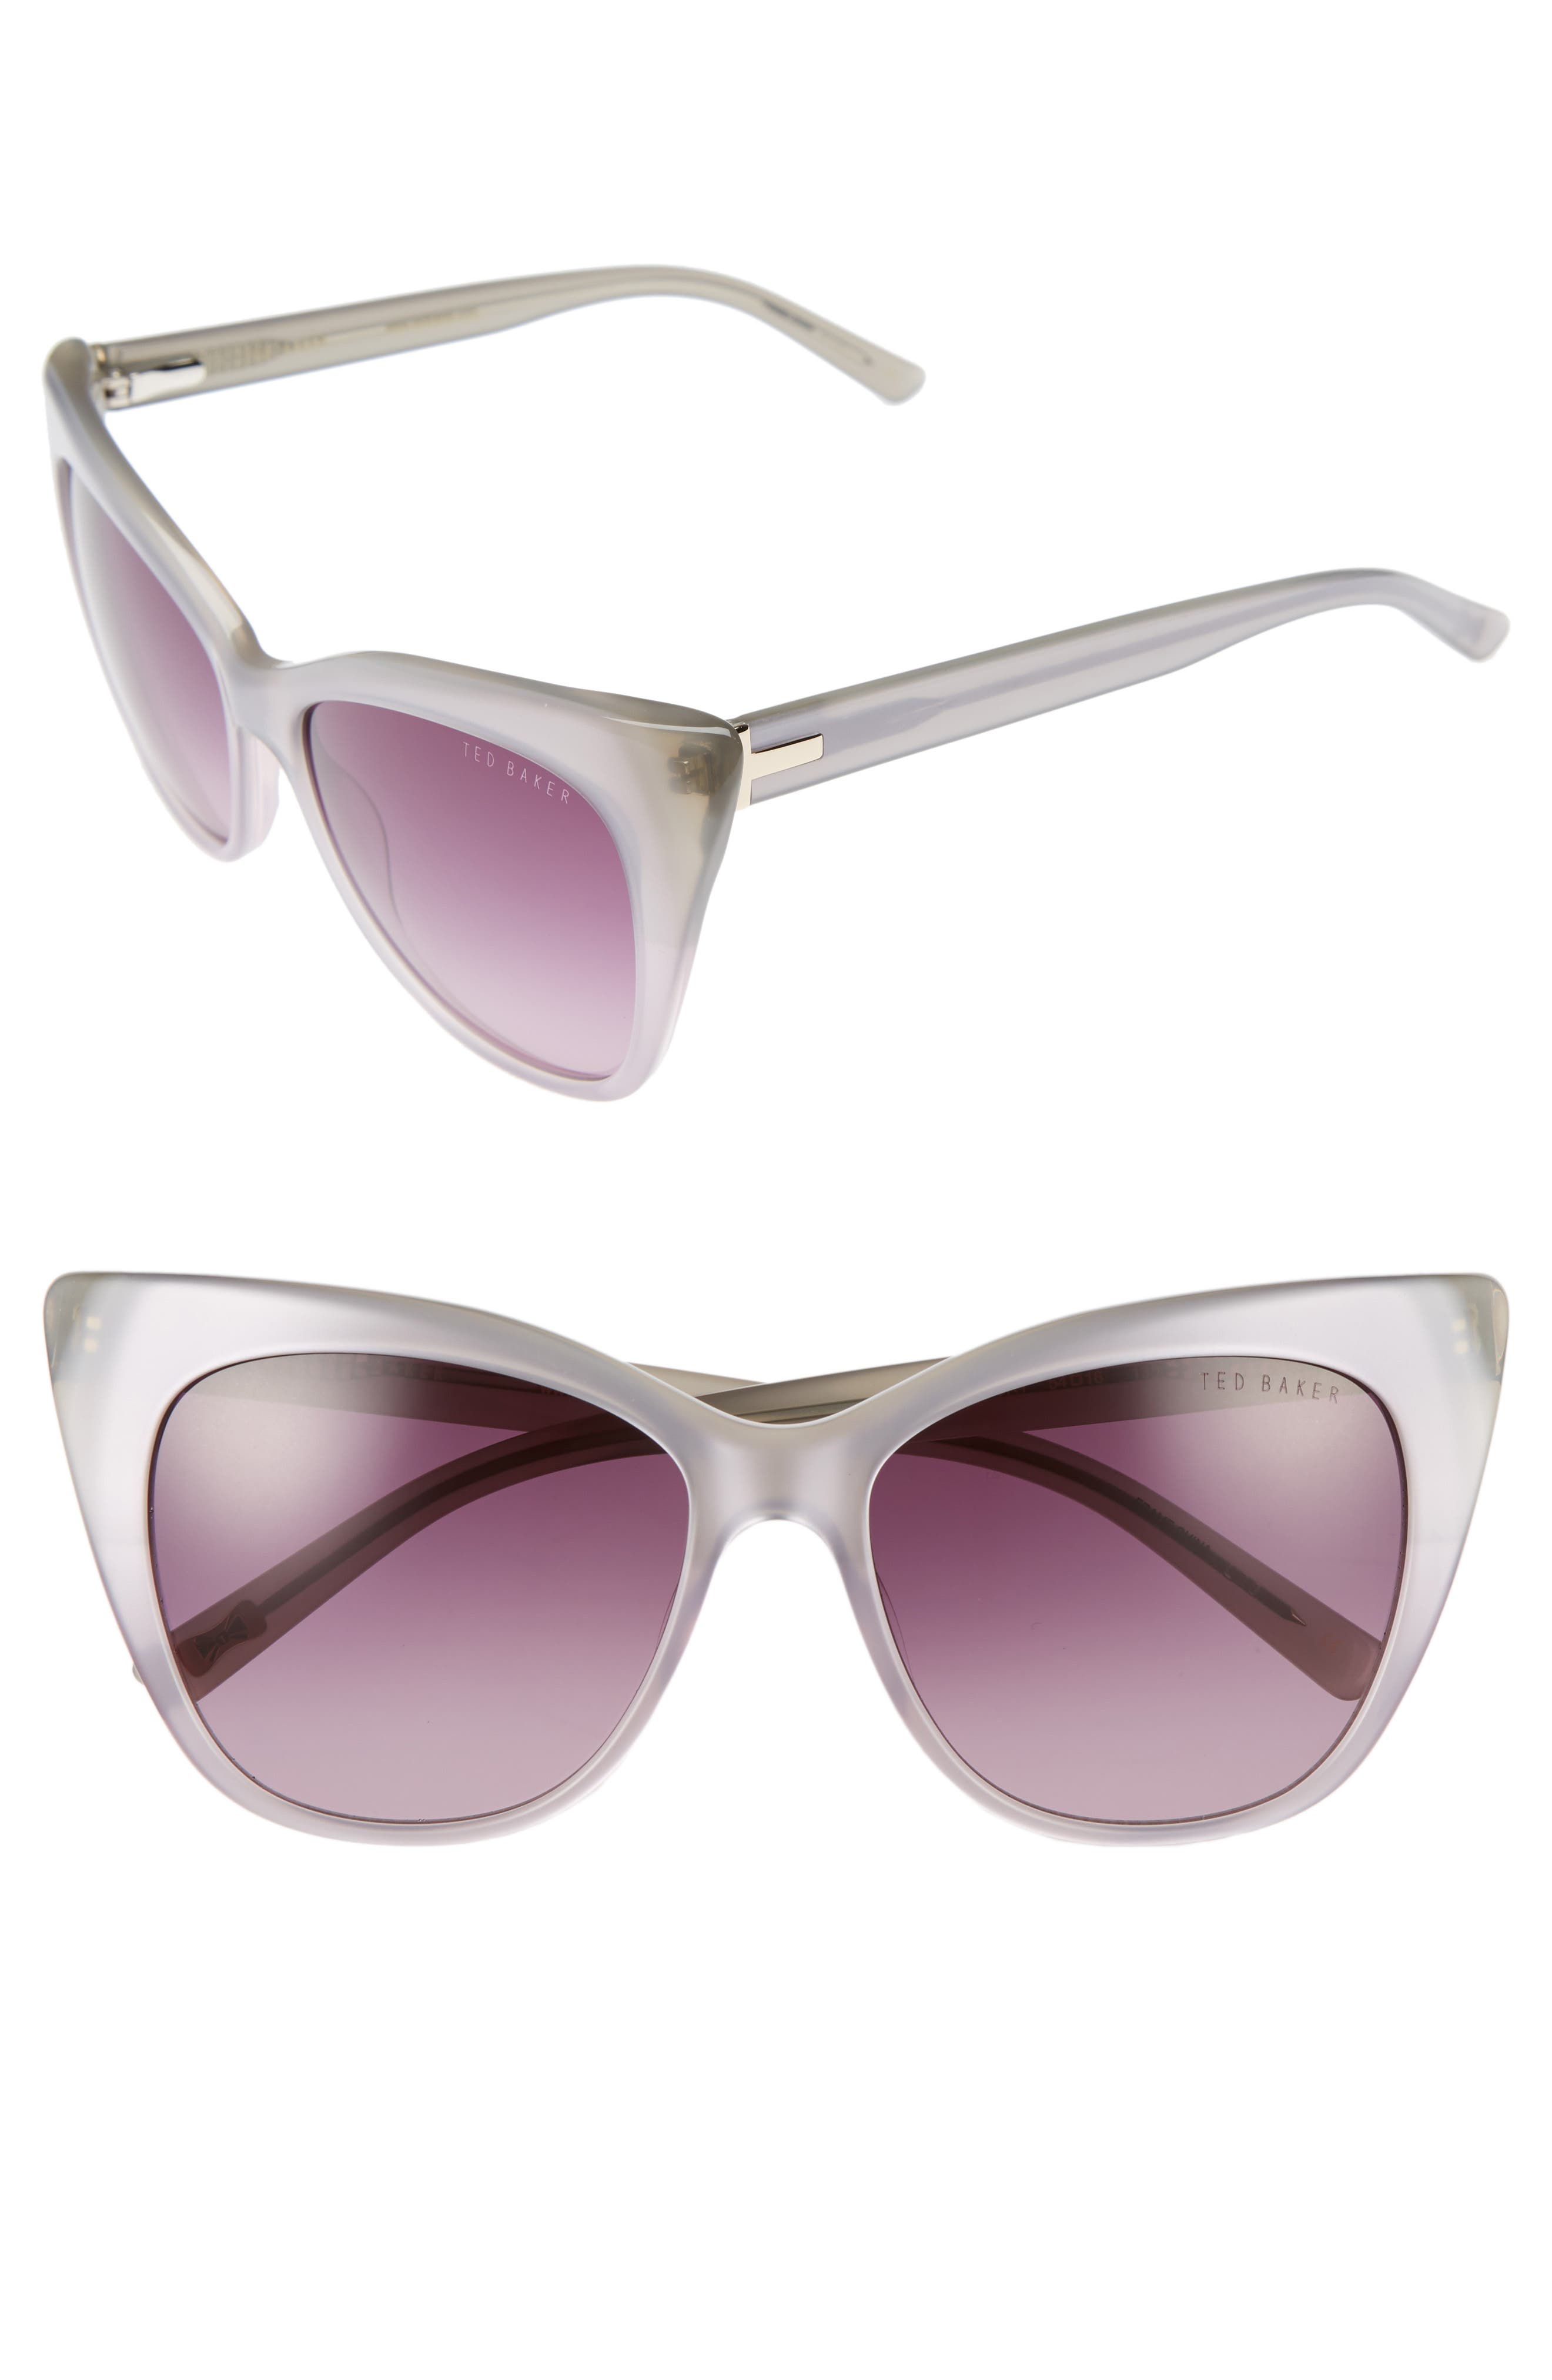 54mm Cat Eye Sunglasses,                             Main thumbnail 1, color,                             020